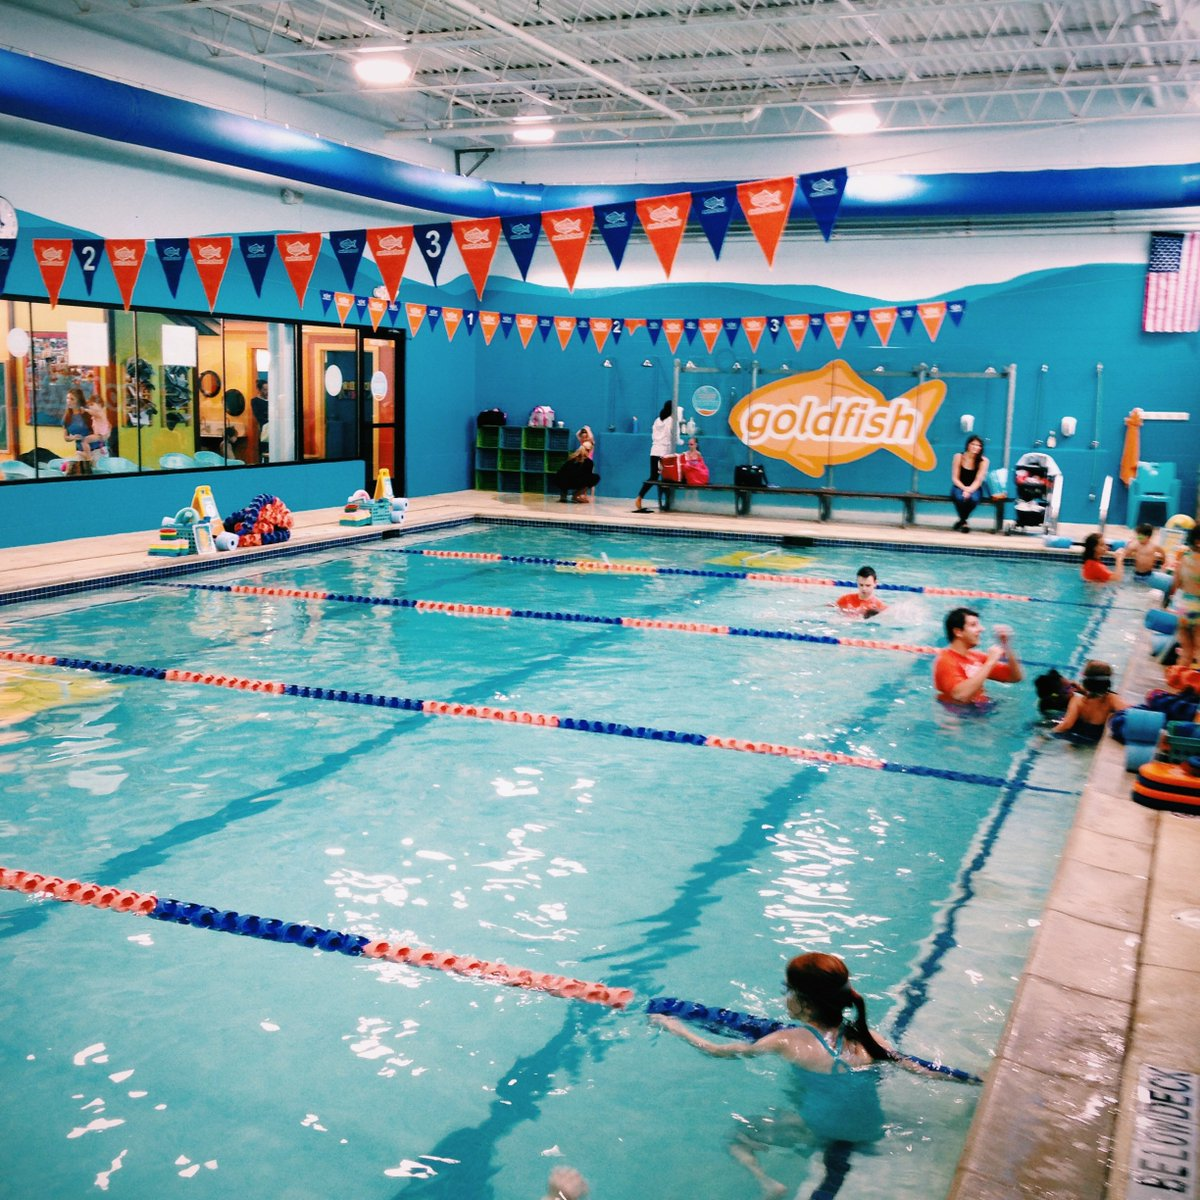 Happy #learntoswimday all! Find a location and sign up for lessons here: https://t.co/z4CrpUKPVN #GoldfishSwimSchool https://t.co/aKmJbwJYDB